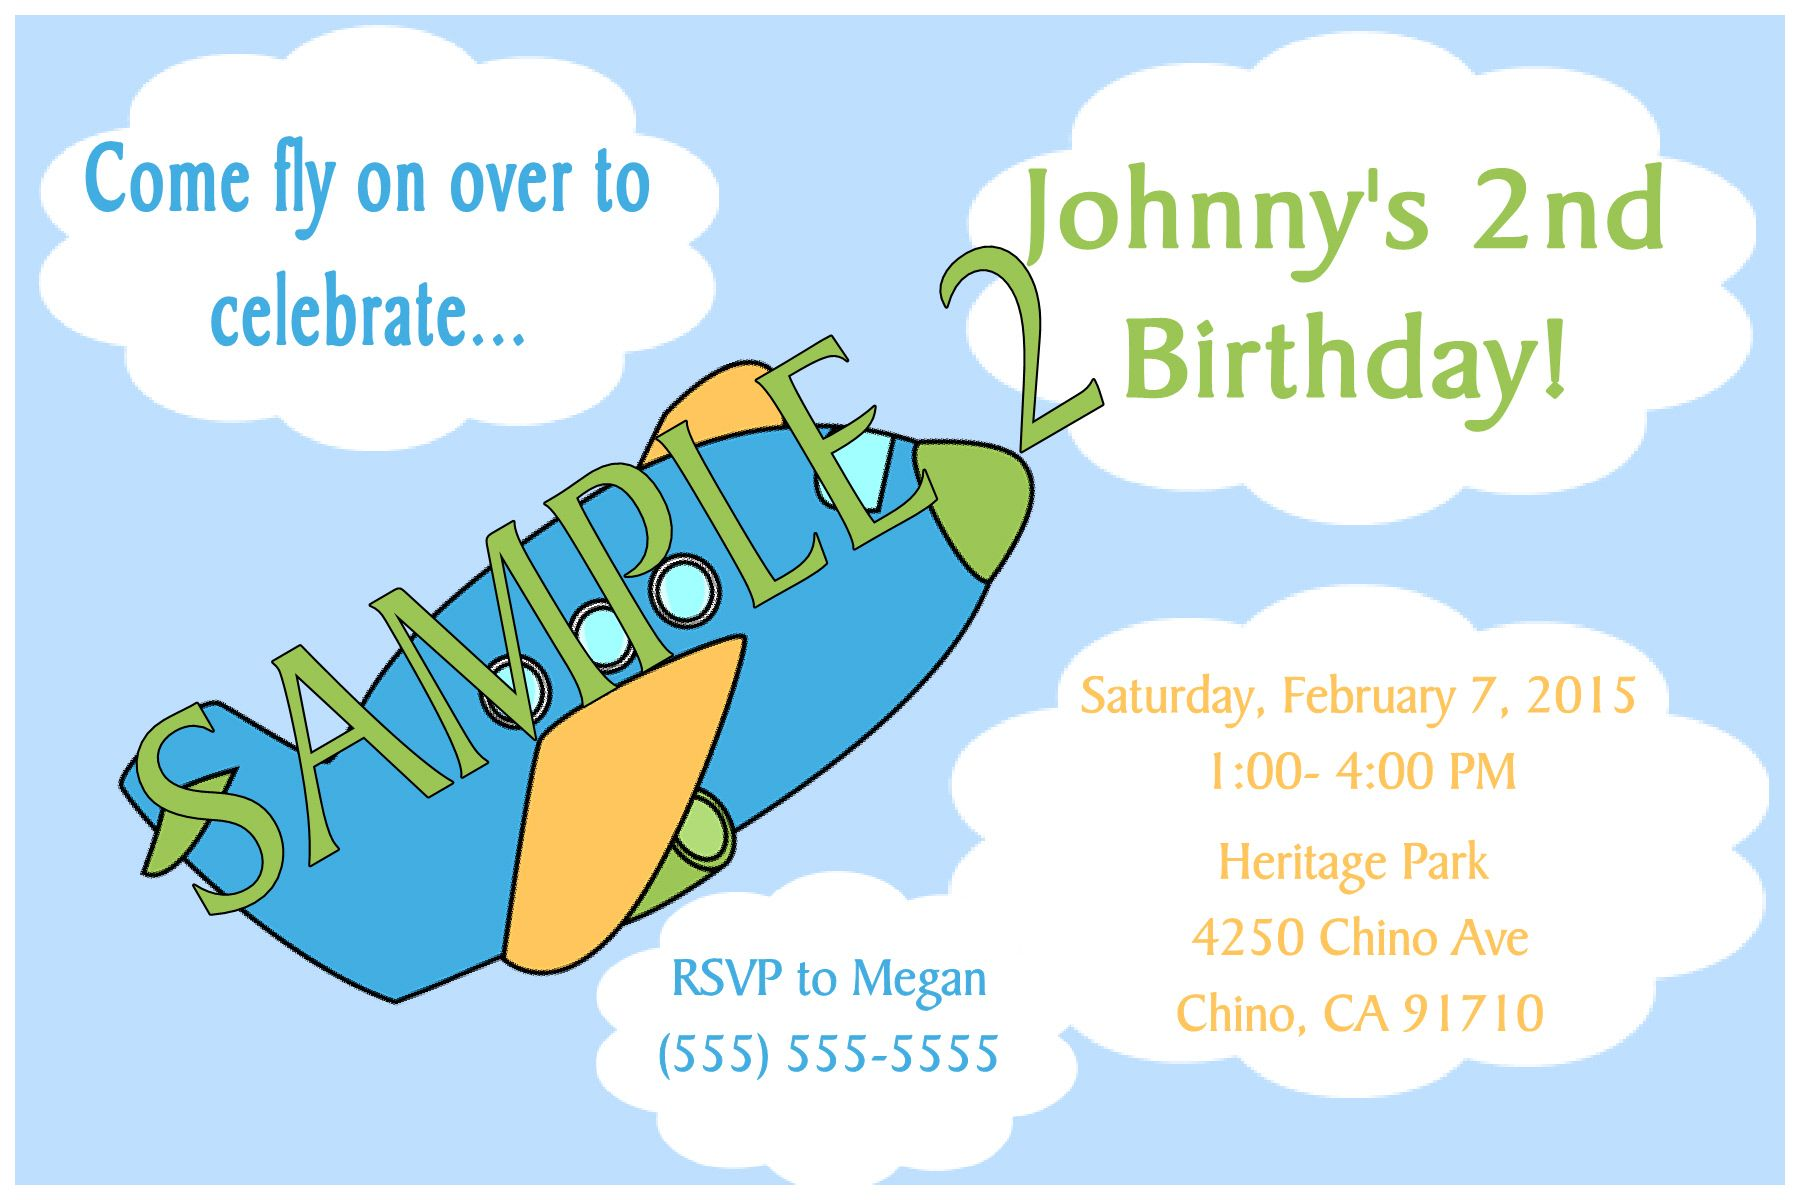 Airplane Birthday Invitation- Click on the image twice to place orders or follow me on facebook. or email me at the address in BIO.